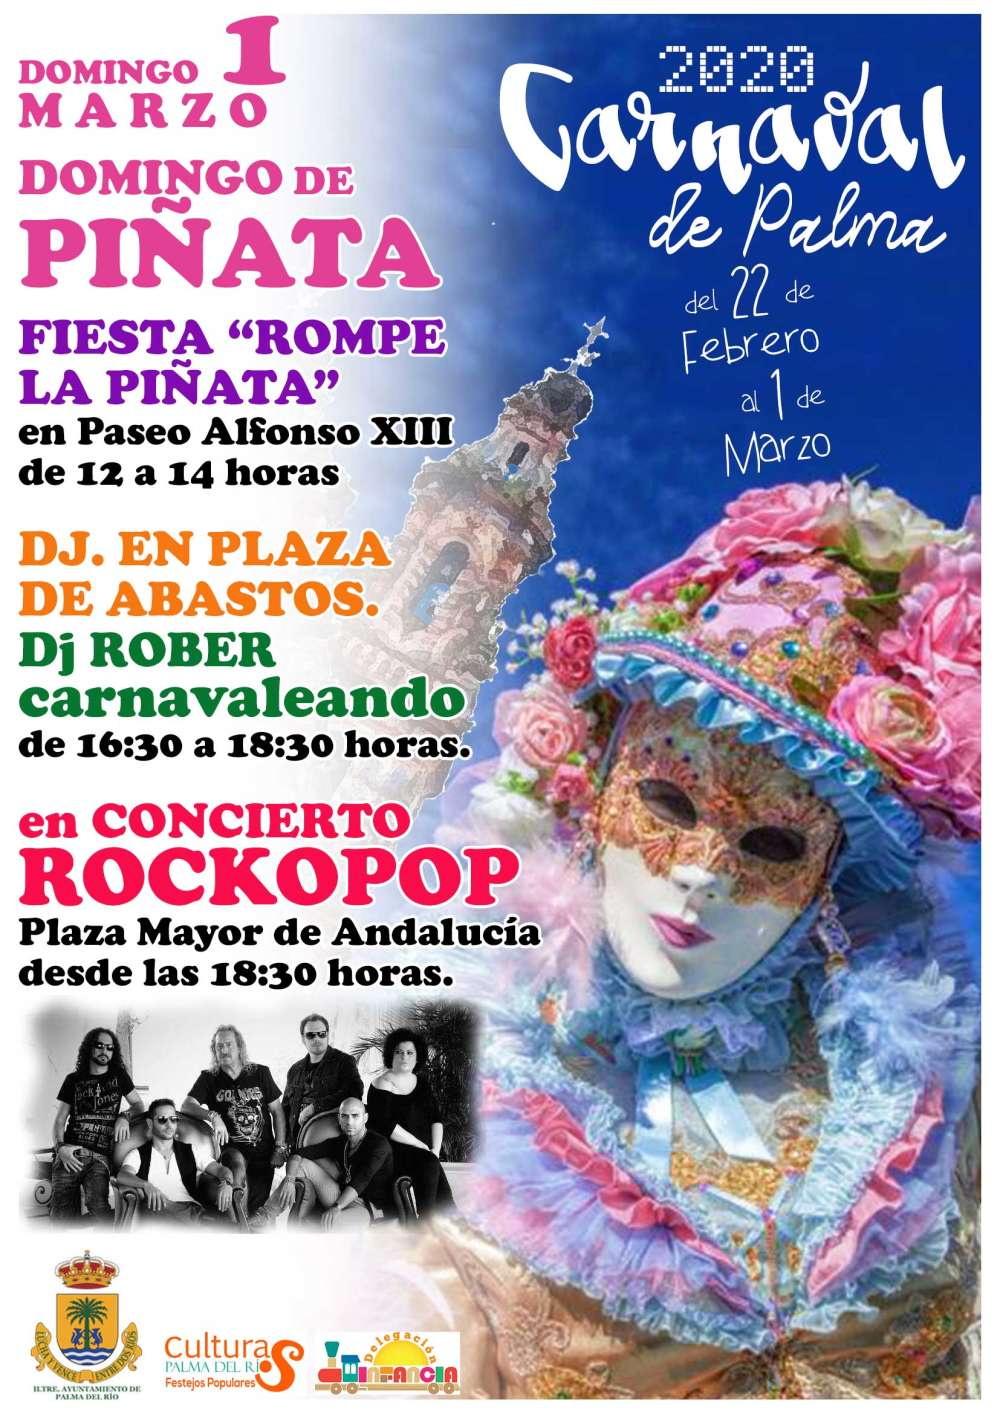 https://www.palmadelrio.es/sites/default/files/web-cartel-carnaval-2020-pinata.jpg